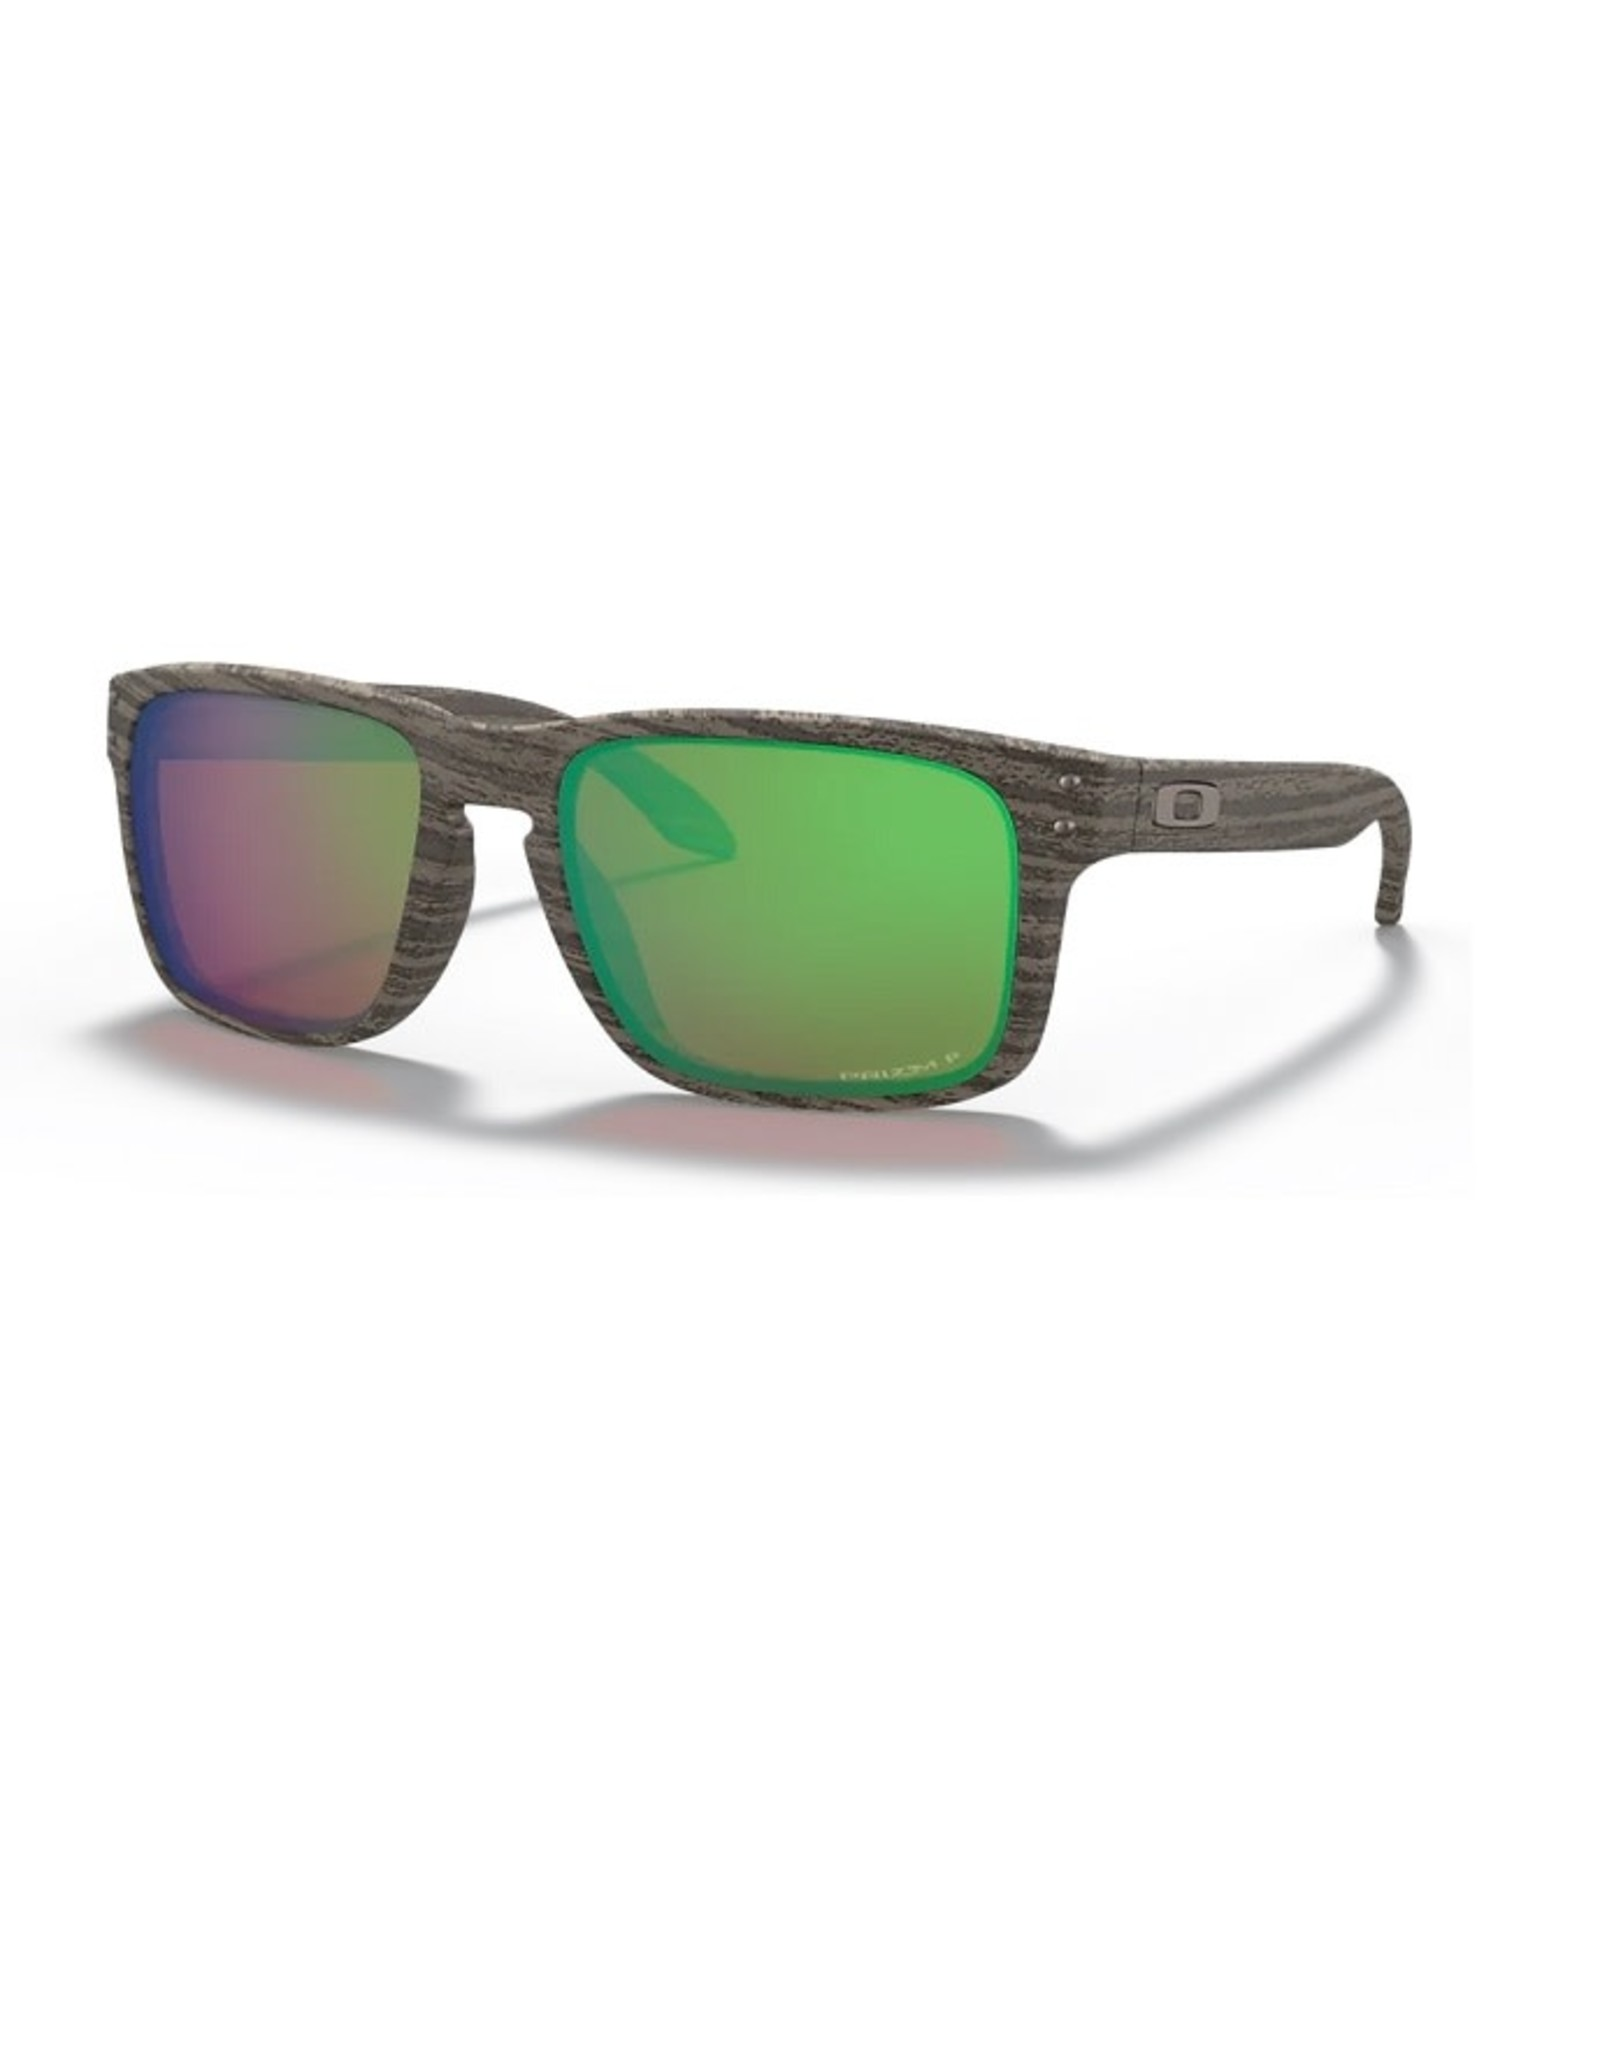 Oakley HOLBROOK Woodgrain, Prizm Shallow Water Polarized